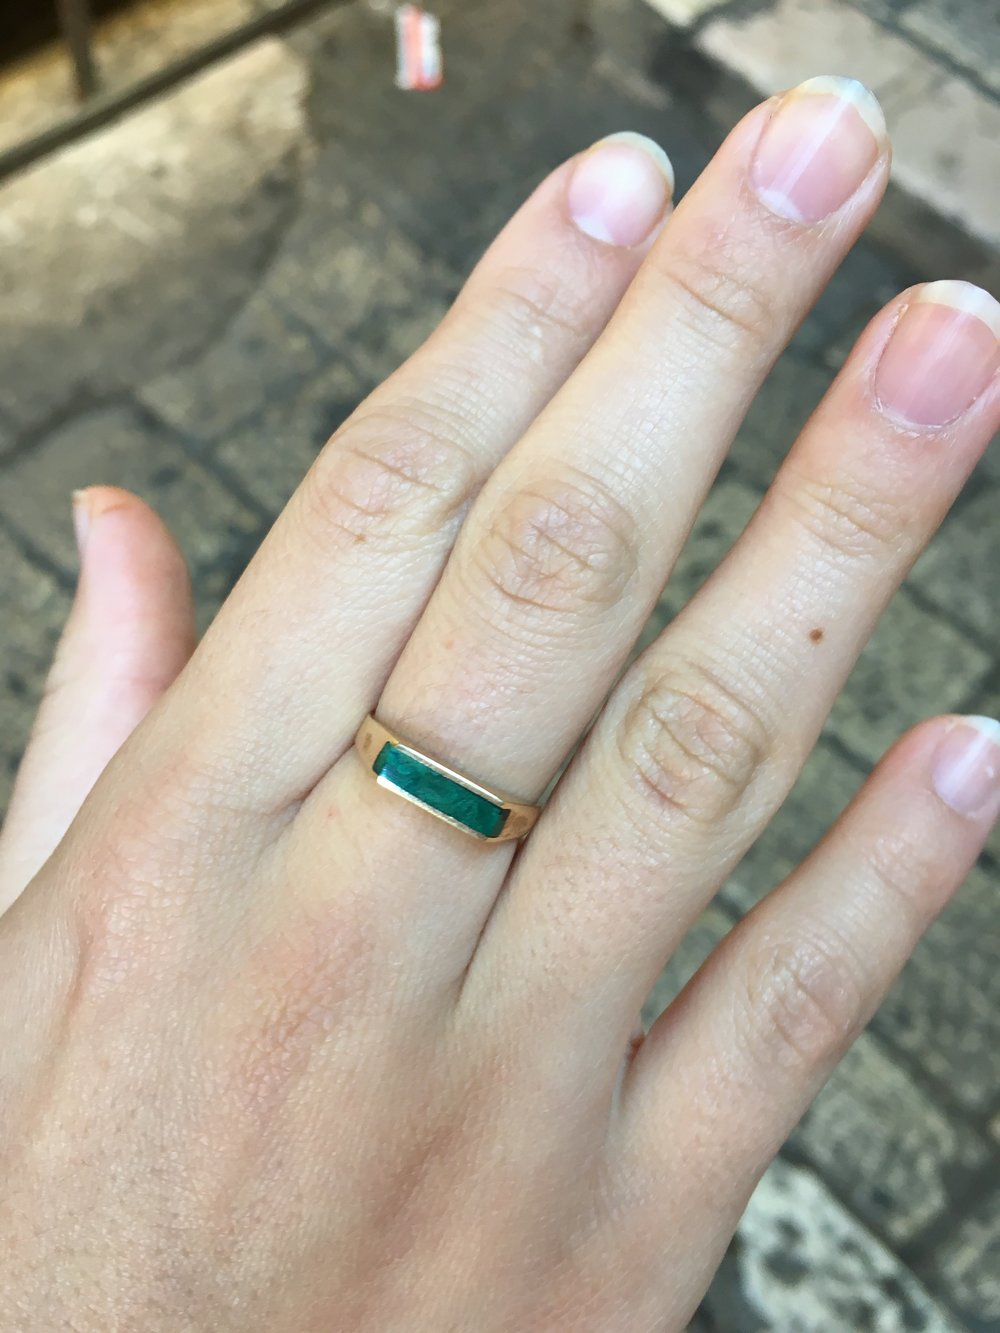 The Ring that the owner's son gave Noa